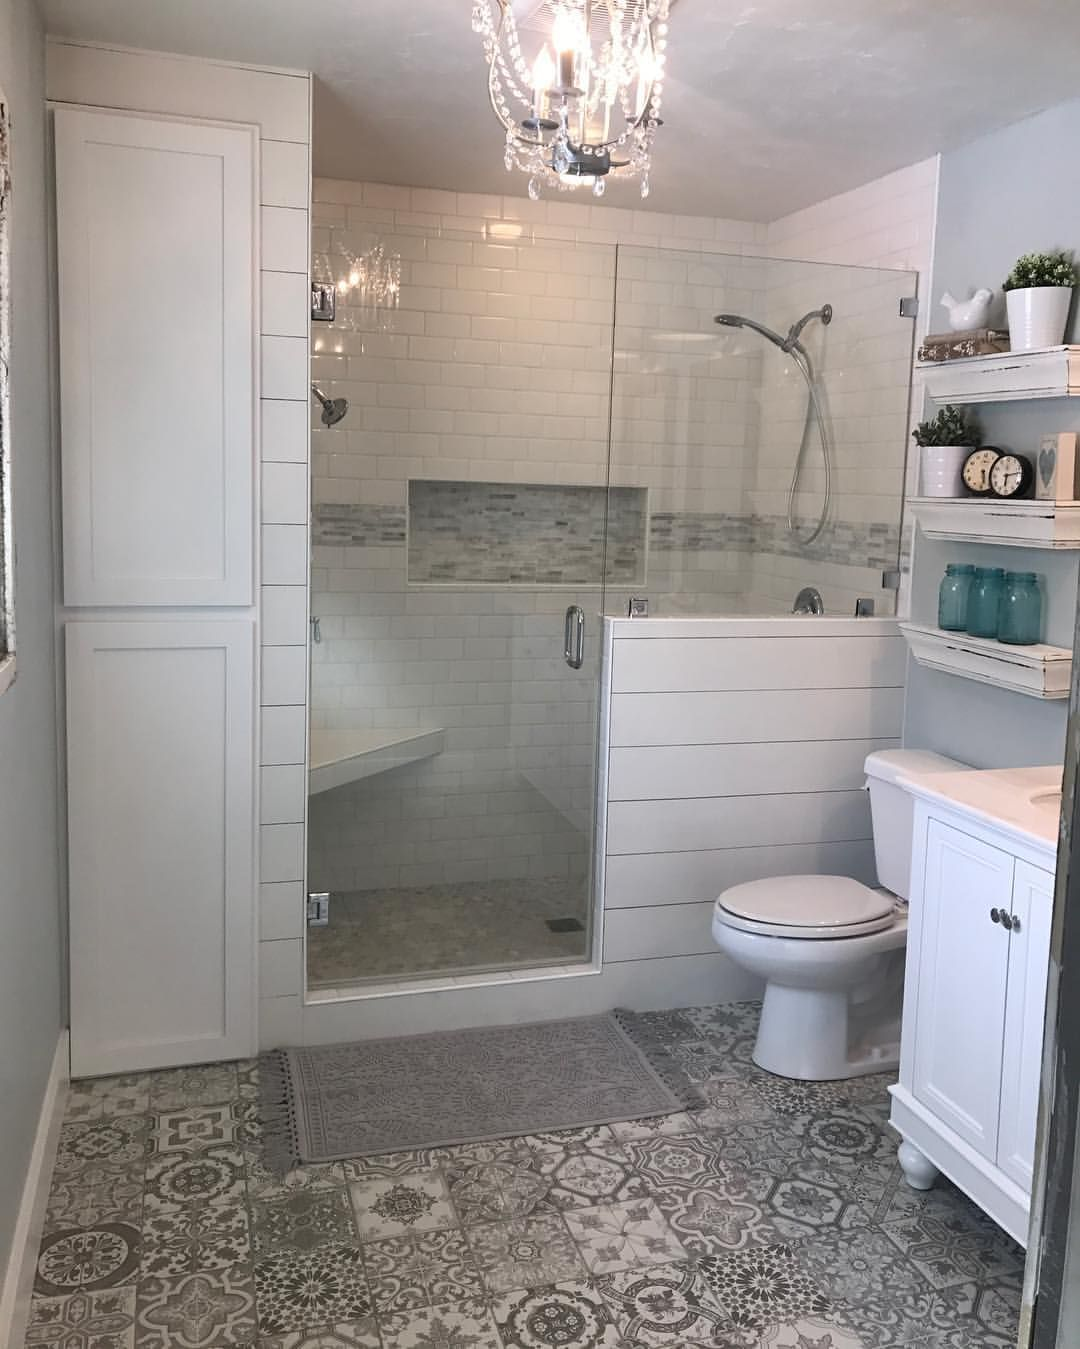 Current Flip House Master Bath After 70 S Colonial To Farmhouse Flip It Is Beyond E Budget Bathroom Remodel Bathrooms Remodel Bathroom Remodel Master New concept colonial home bathroom